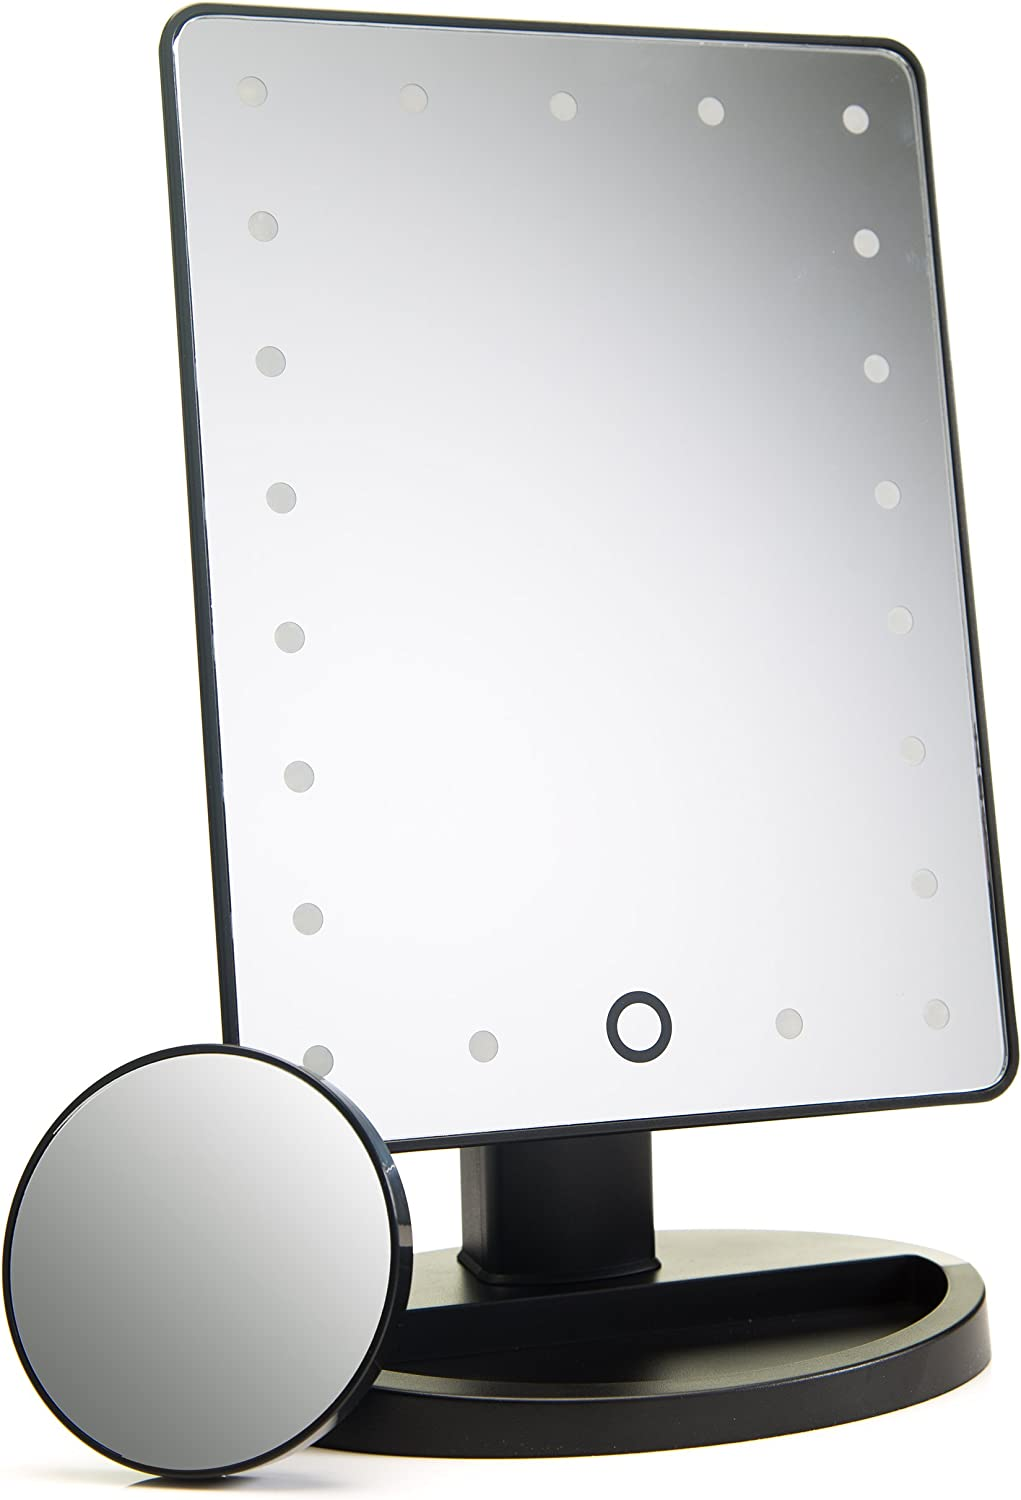 Absolutely Luvly Lighted Makeup Mirror with Magnification Vanity Mirror with Lights -Touch Screen Dimming -Small Detachable 10x Magnifying Makeup Mirror -Portable Makeup Accessories Make Up Mirror